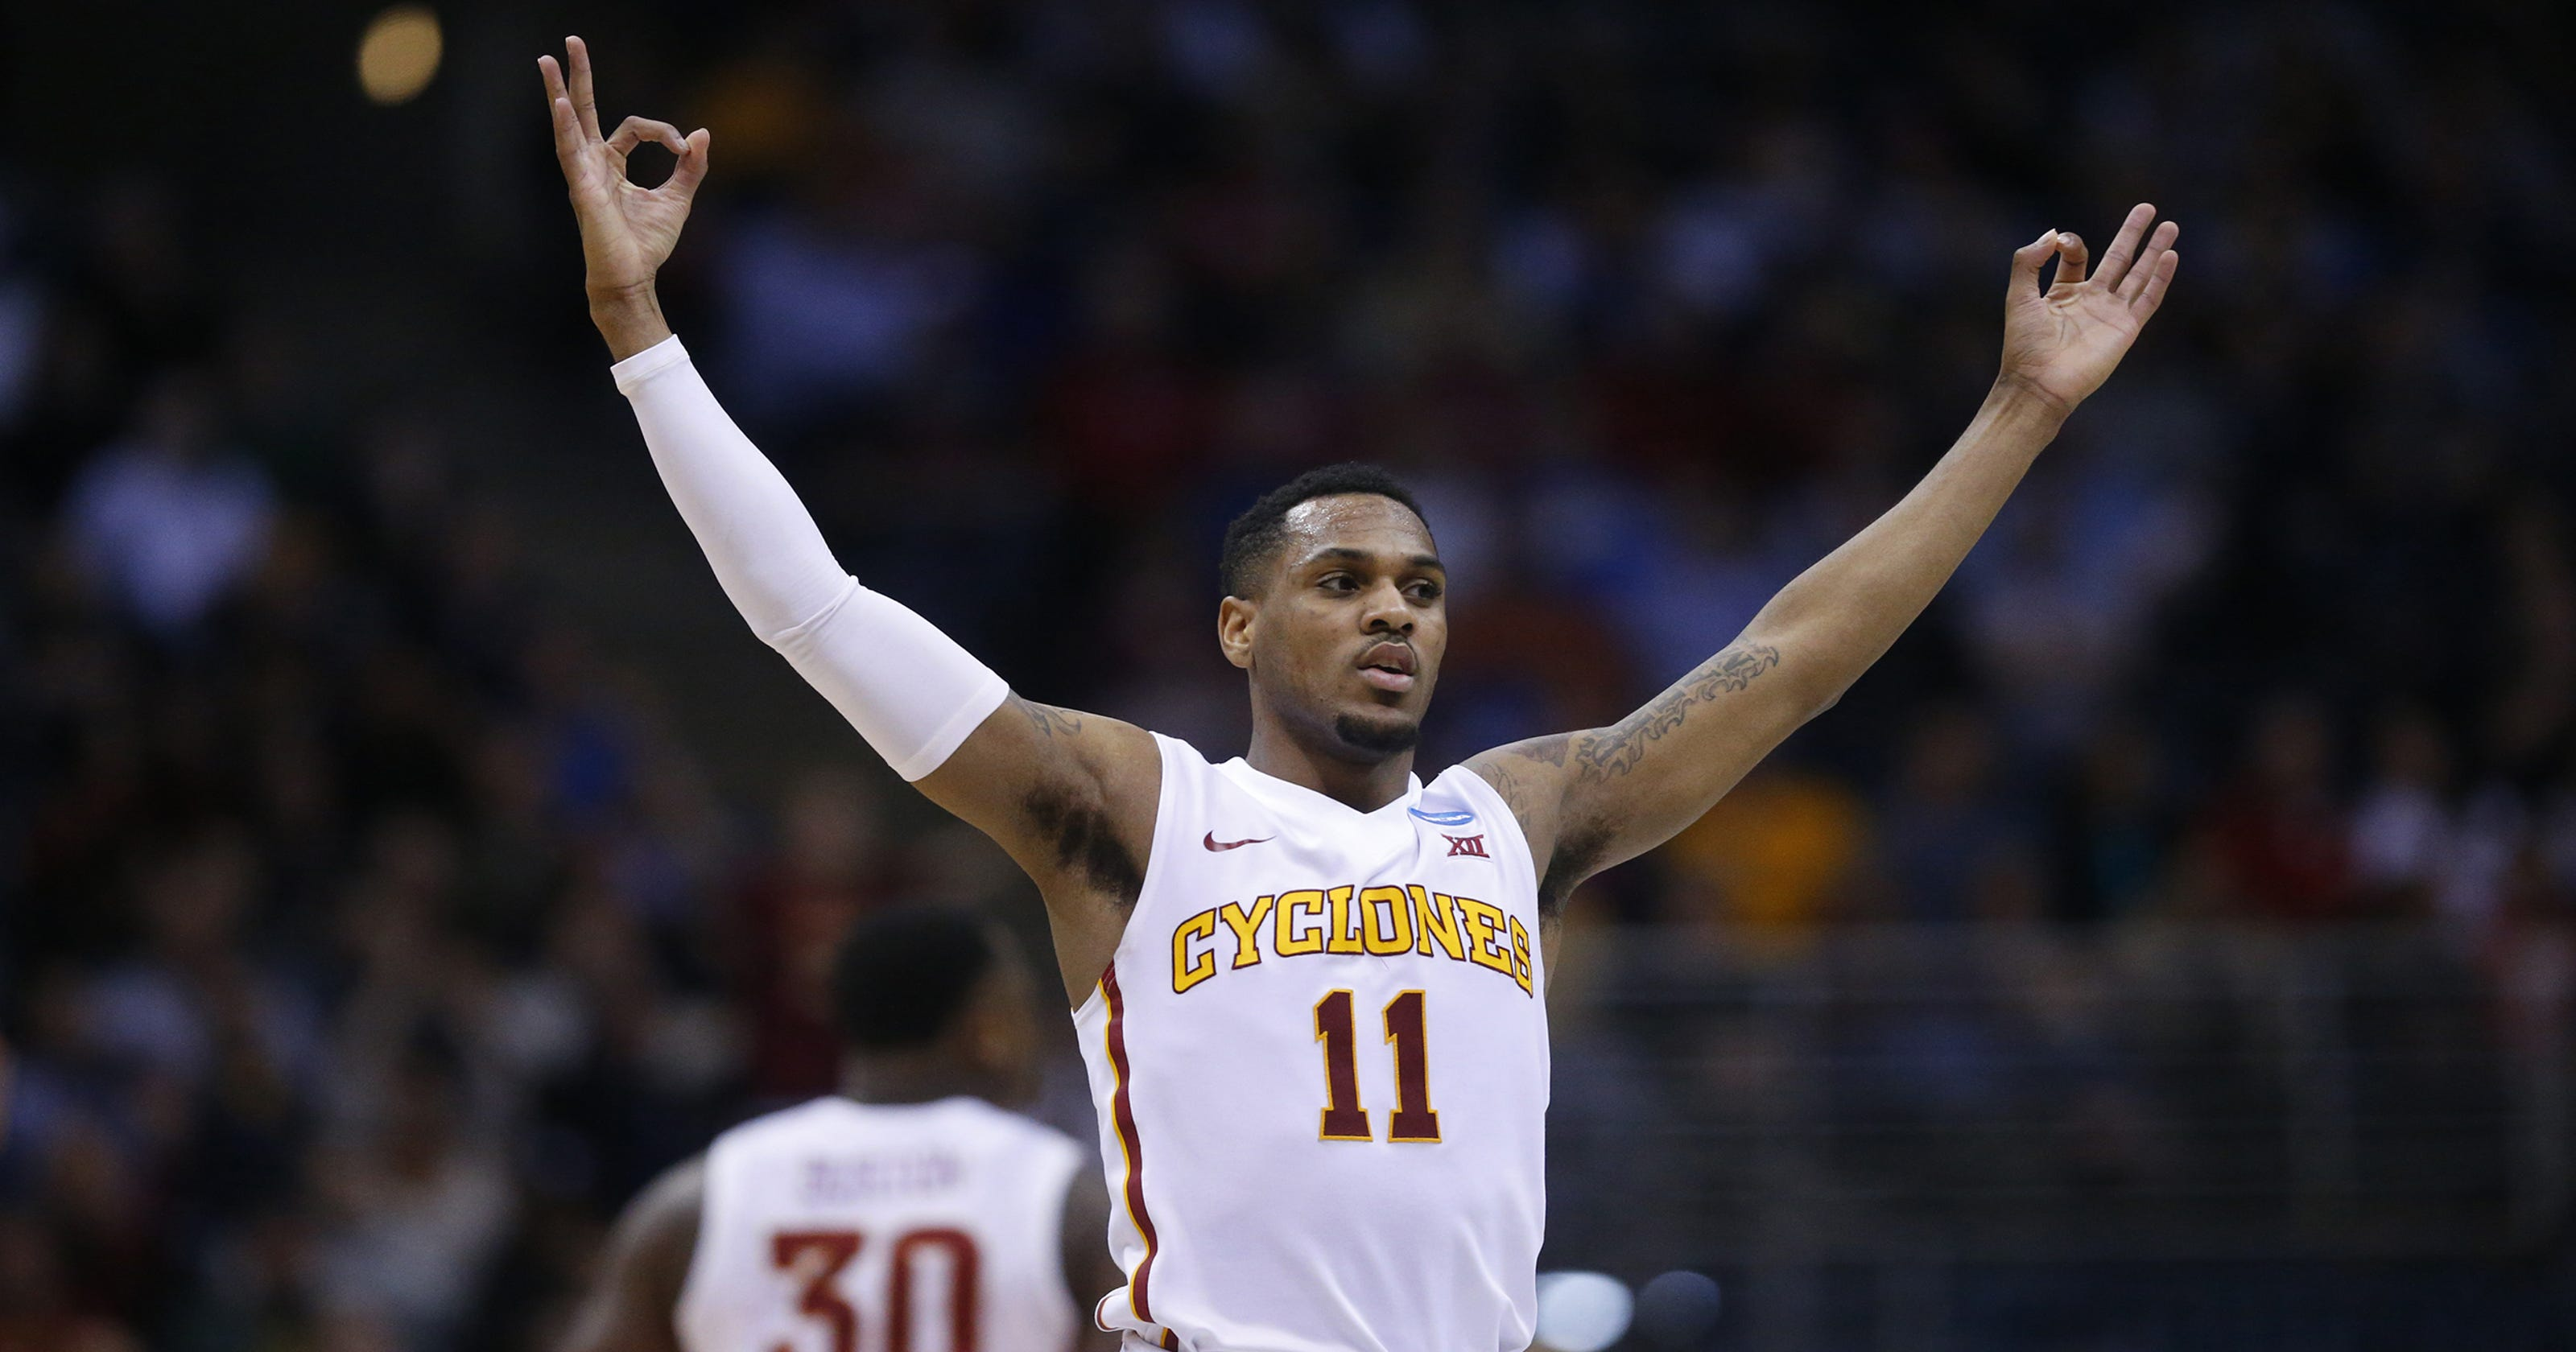 ed9499207 Former Cyclone star Monte Morris back in Iowa to play the Iowa ...